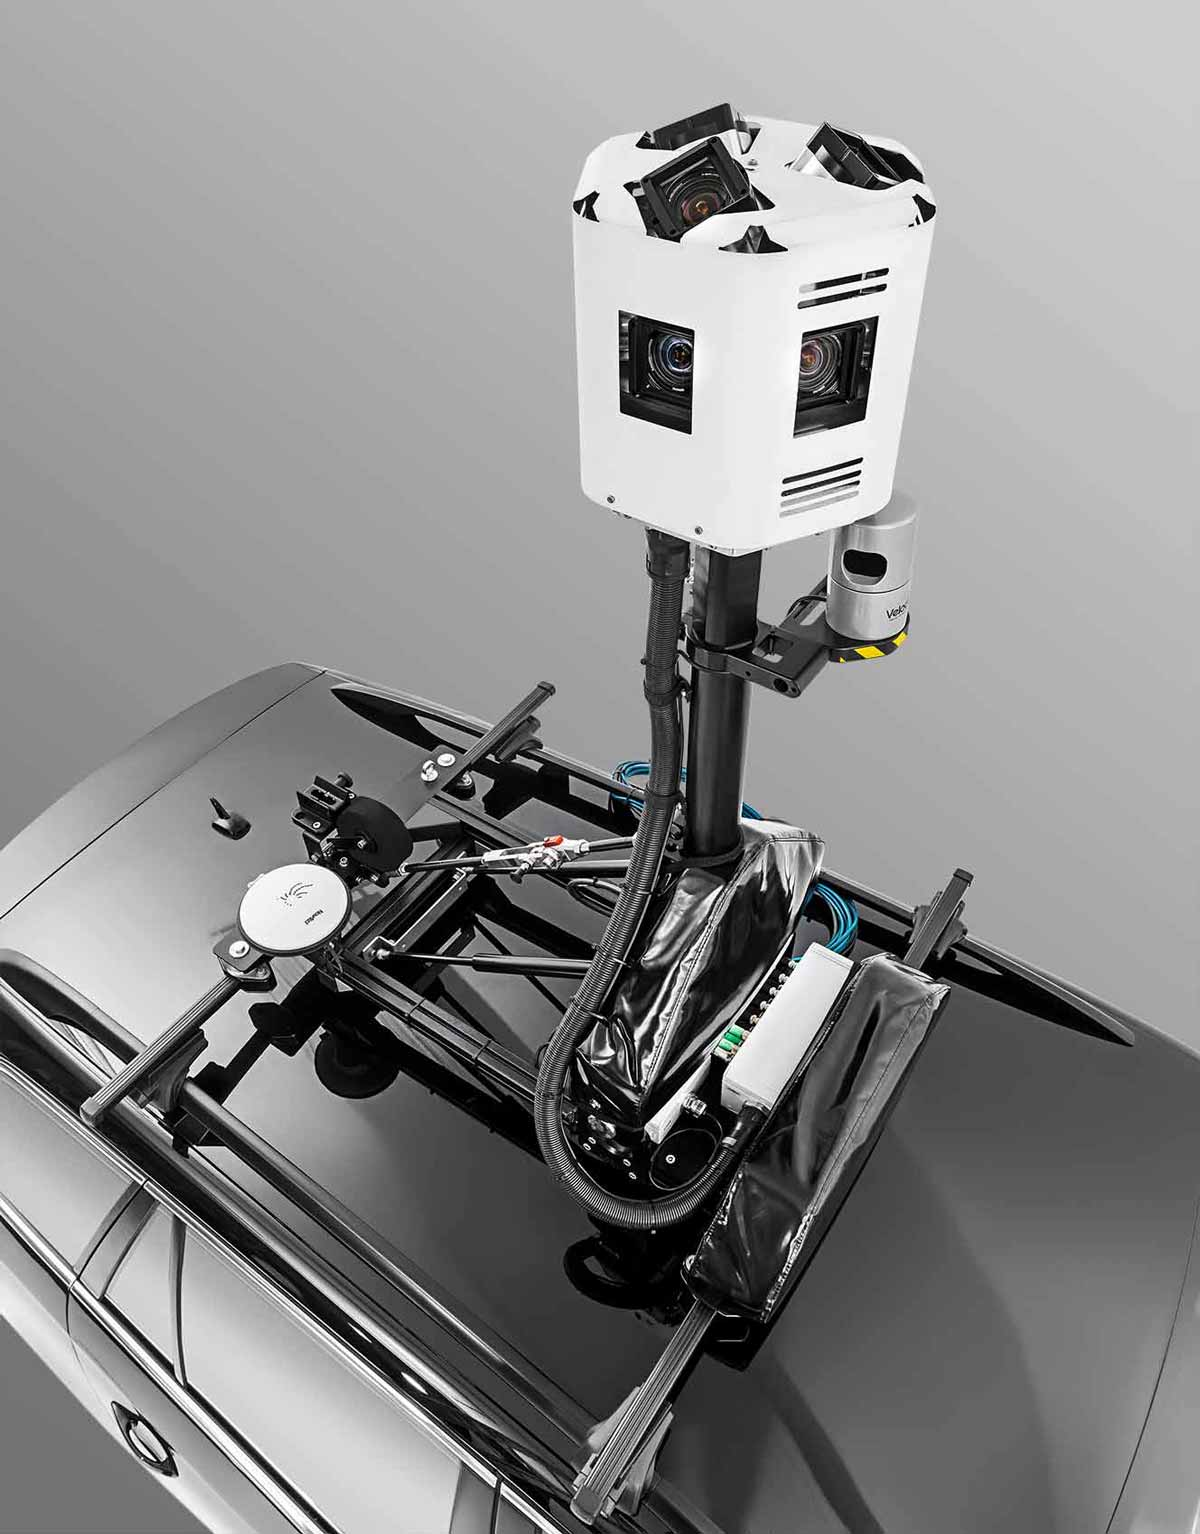 The camera head captures 360 panoramas at highest quality